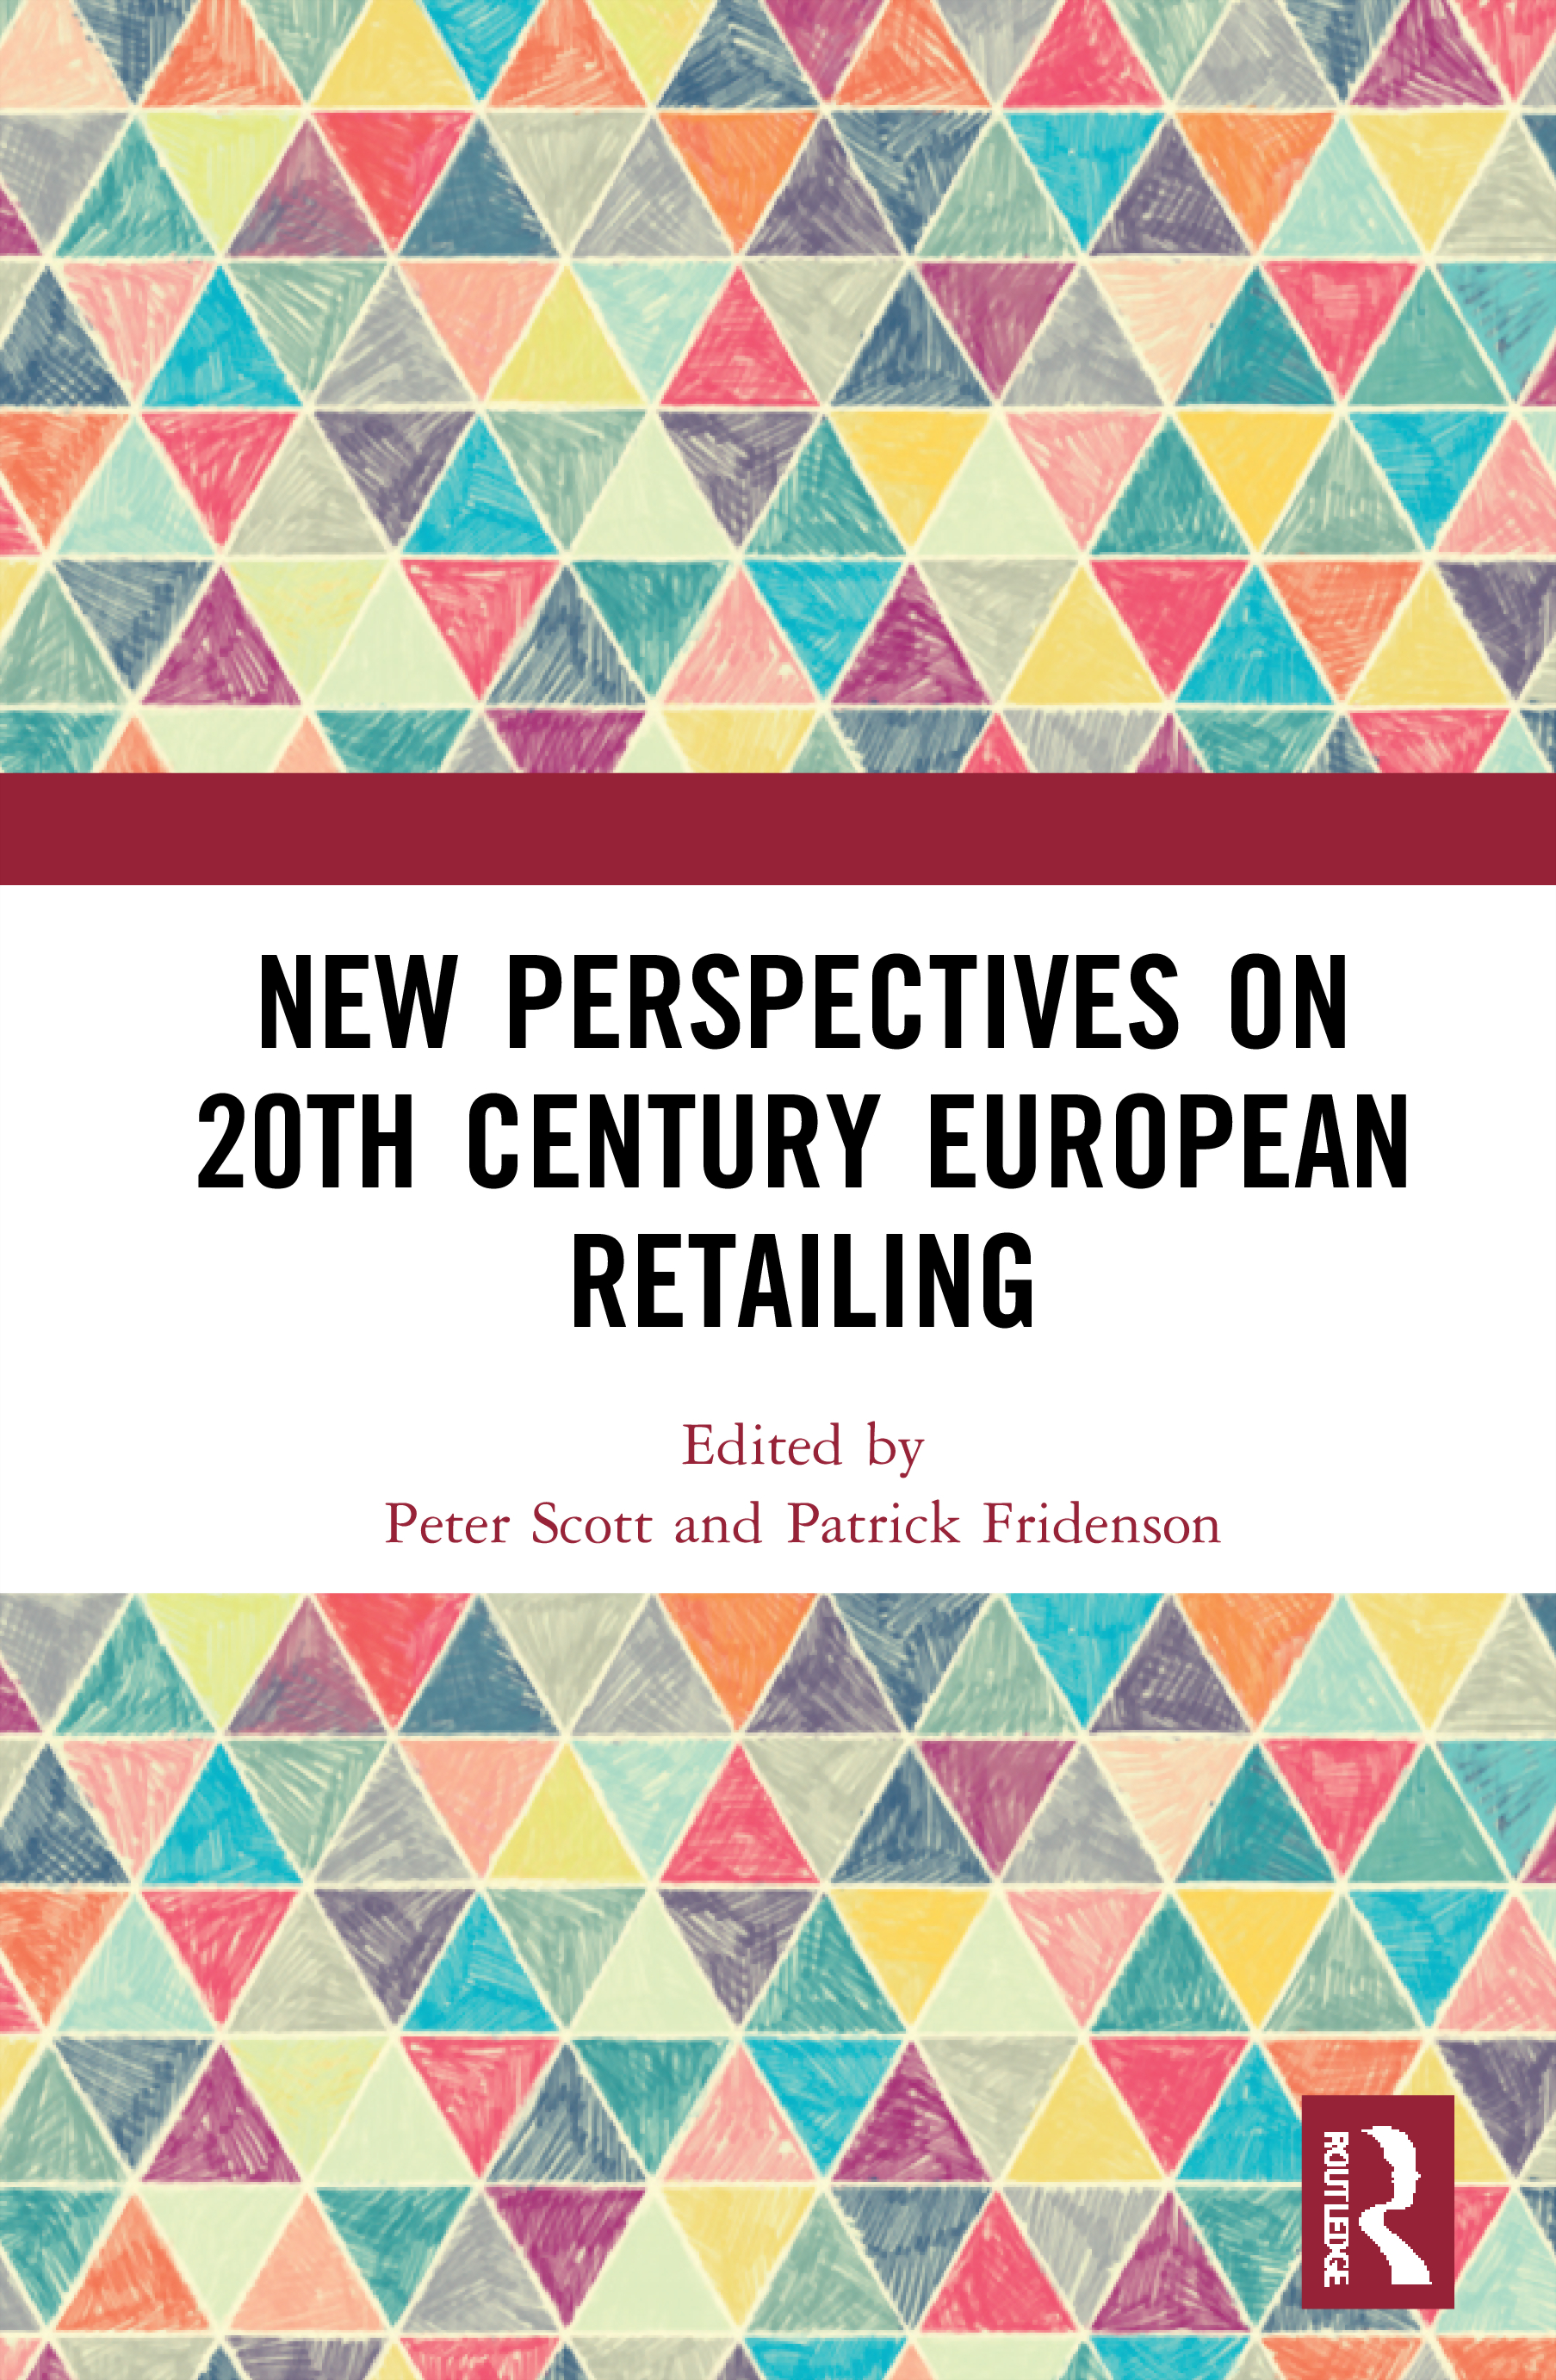 New Perspectives on 20th Century European Retailing